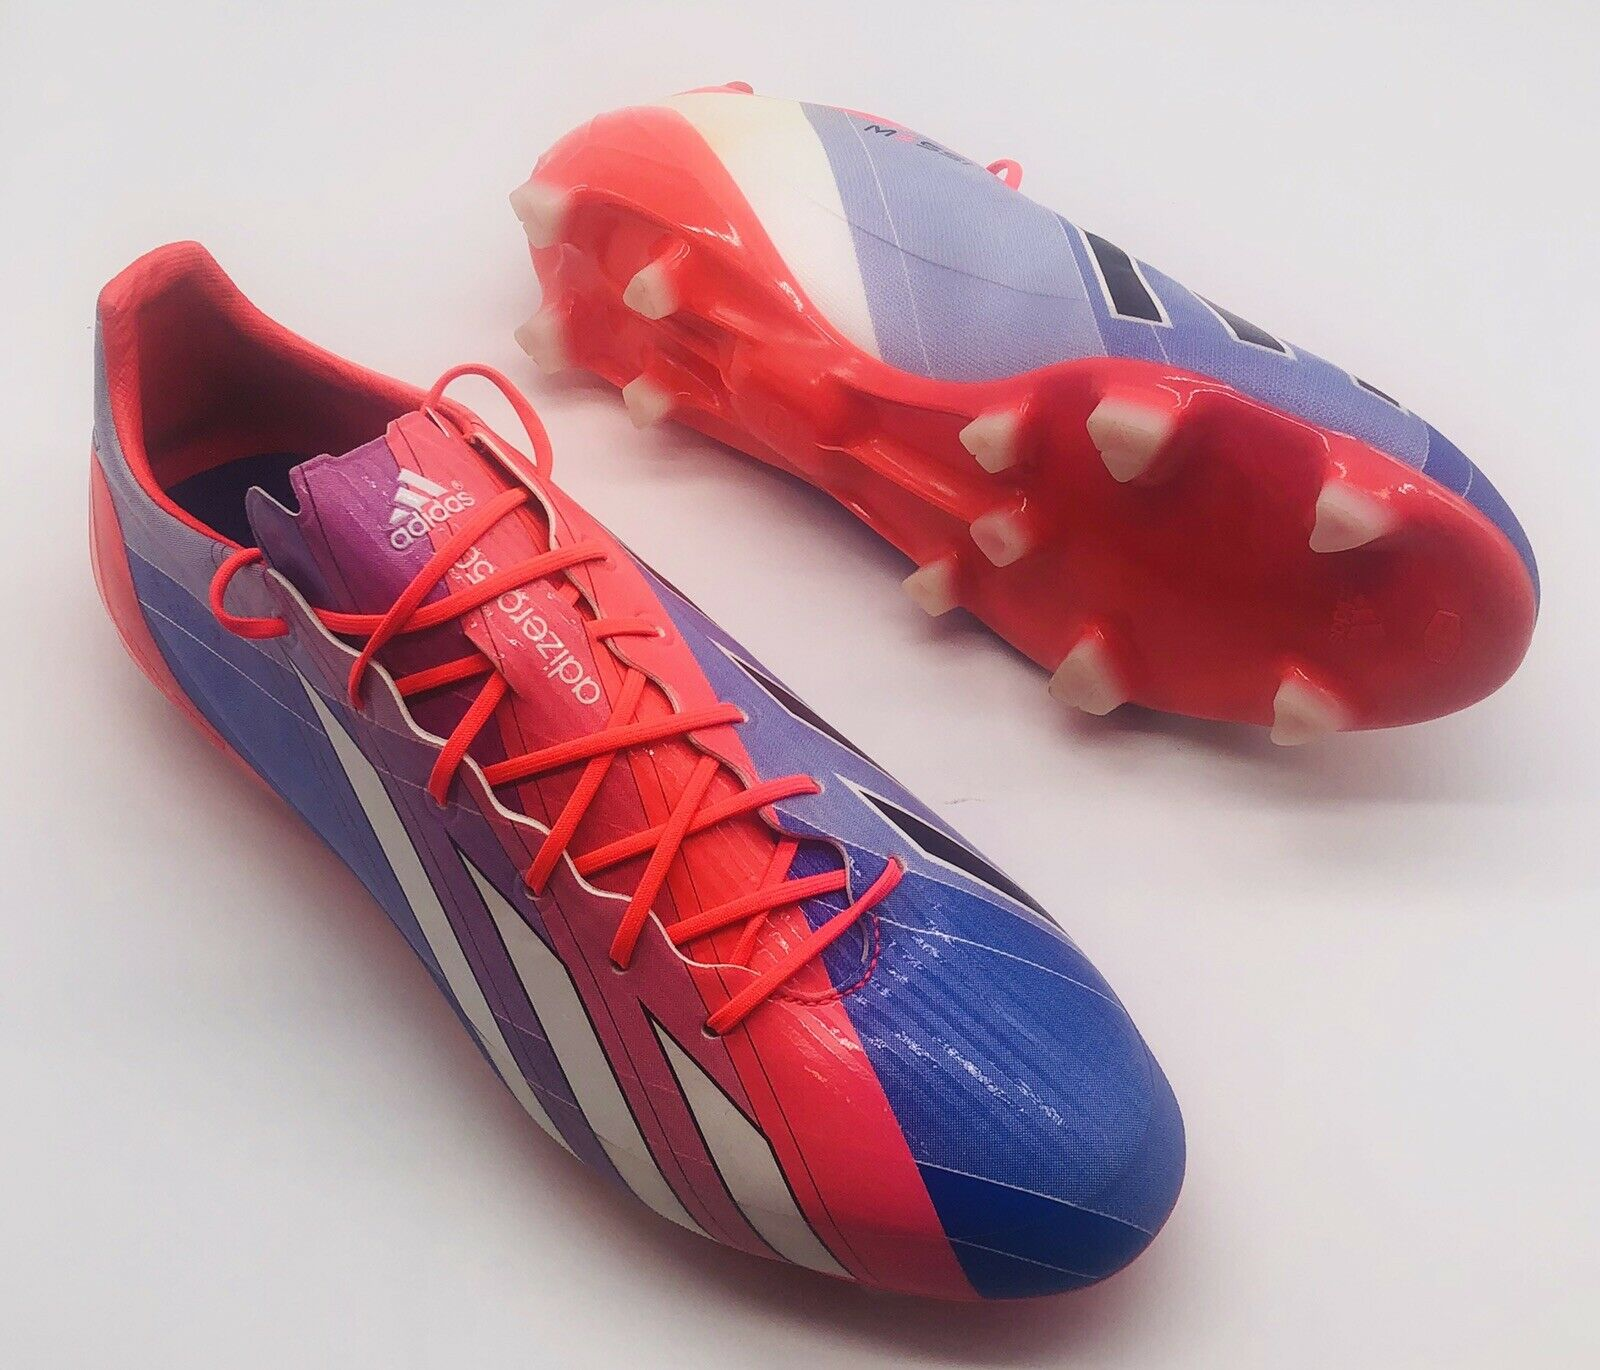 Mens Adidas F50 Adizero Messi Battle Pack 2014 Wc Soccer Shoes Cleats M19855 11 5 For Sale Ebay